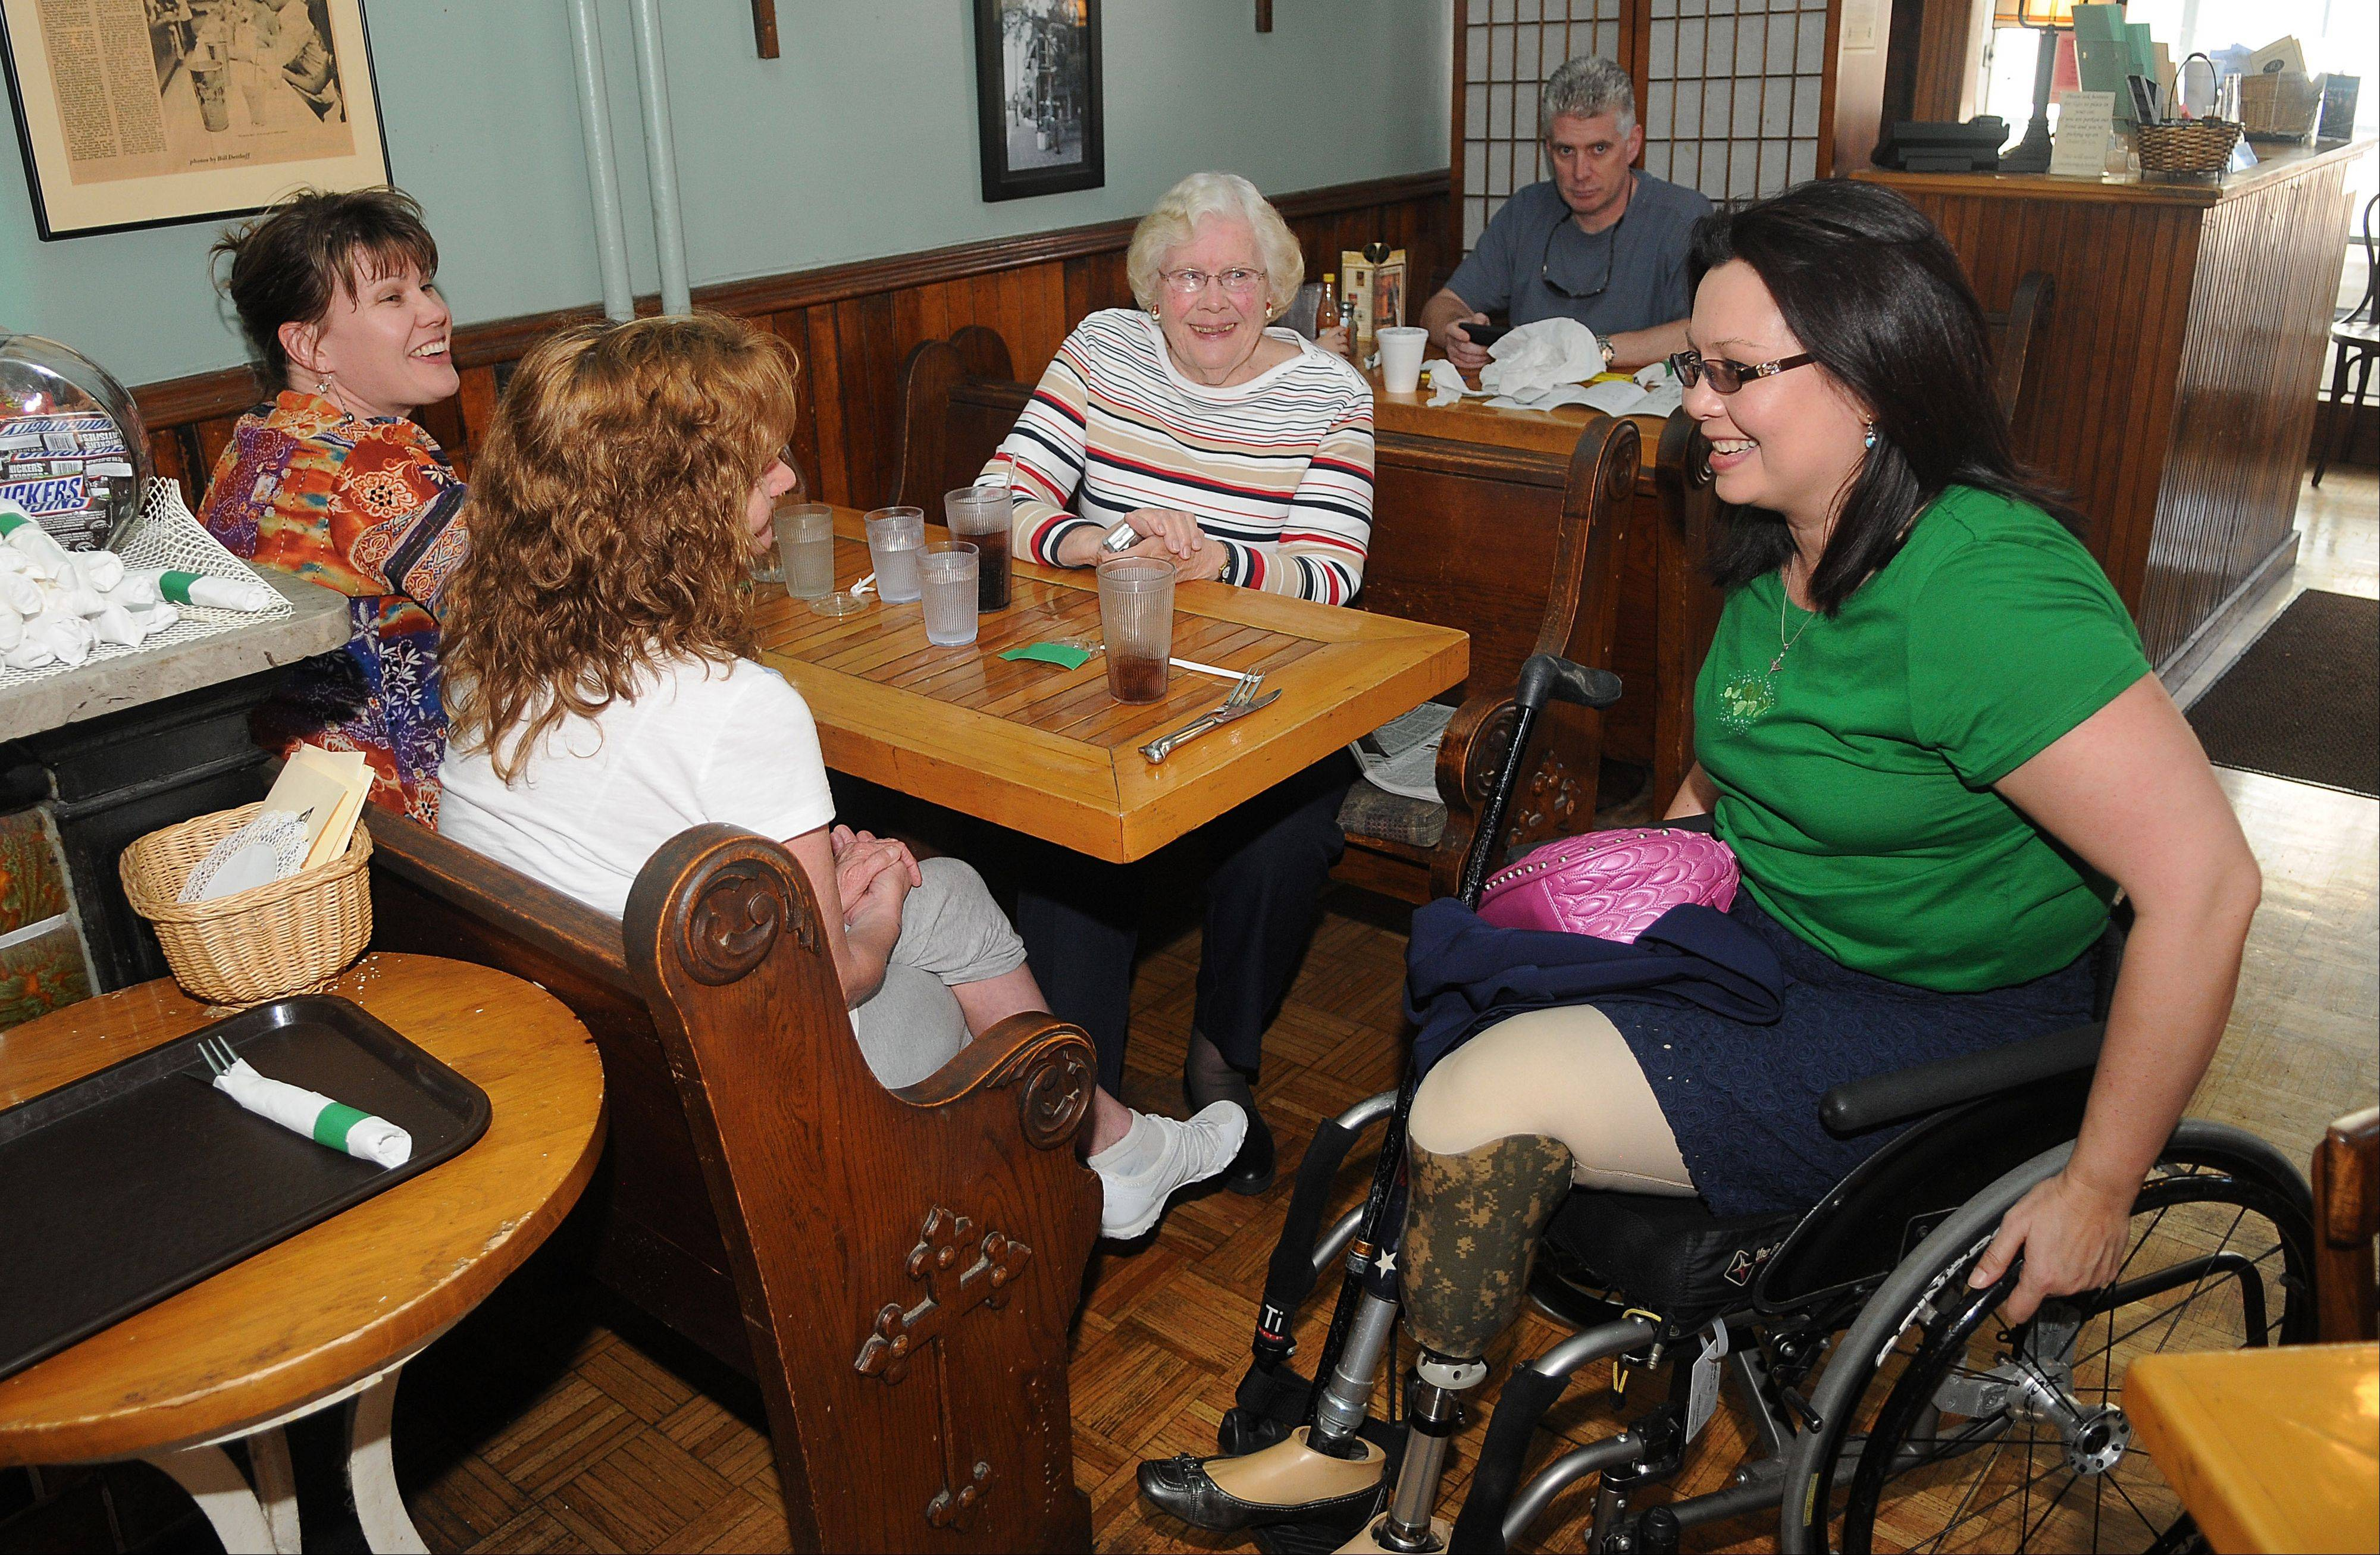 "Tammy Duckworth, candidate for the 8th Congressional District, chats with Julie Thompson of Carpentersville, Ruth Allen of Elgin, and Lori Allen of Algonquin on Saturday while stopping in at Al's Cafe in Elgin. The ladies recognized Duckworth right away, with Ruth Allen saying she admired Duckworth for her ""courage and convictions."""